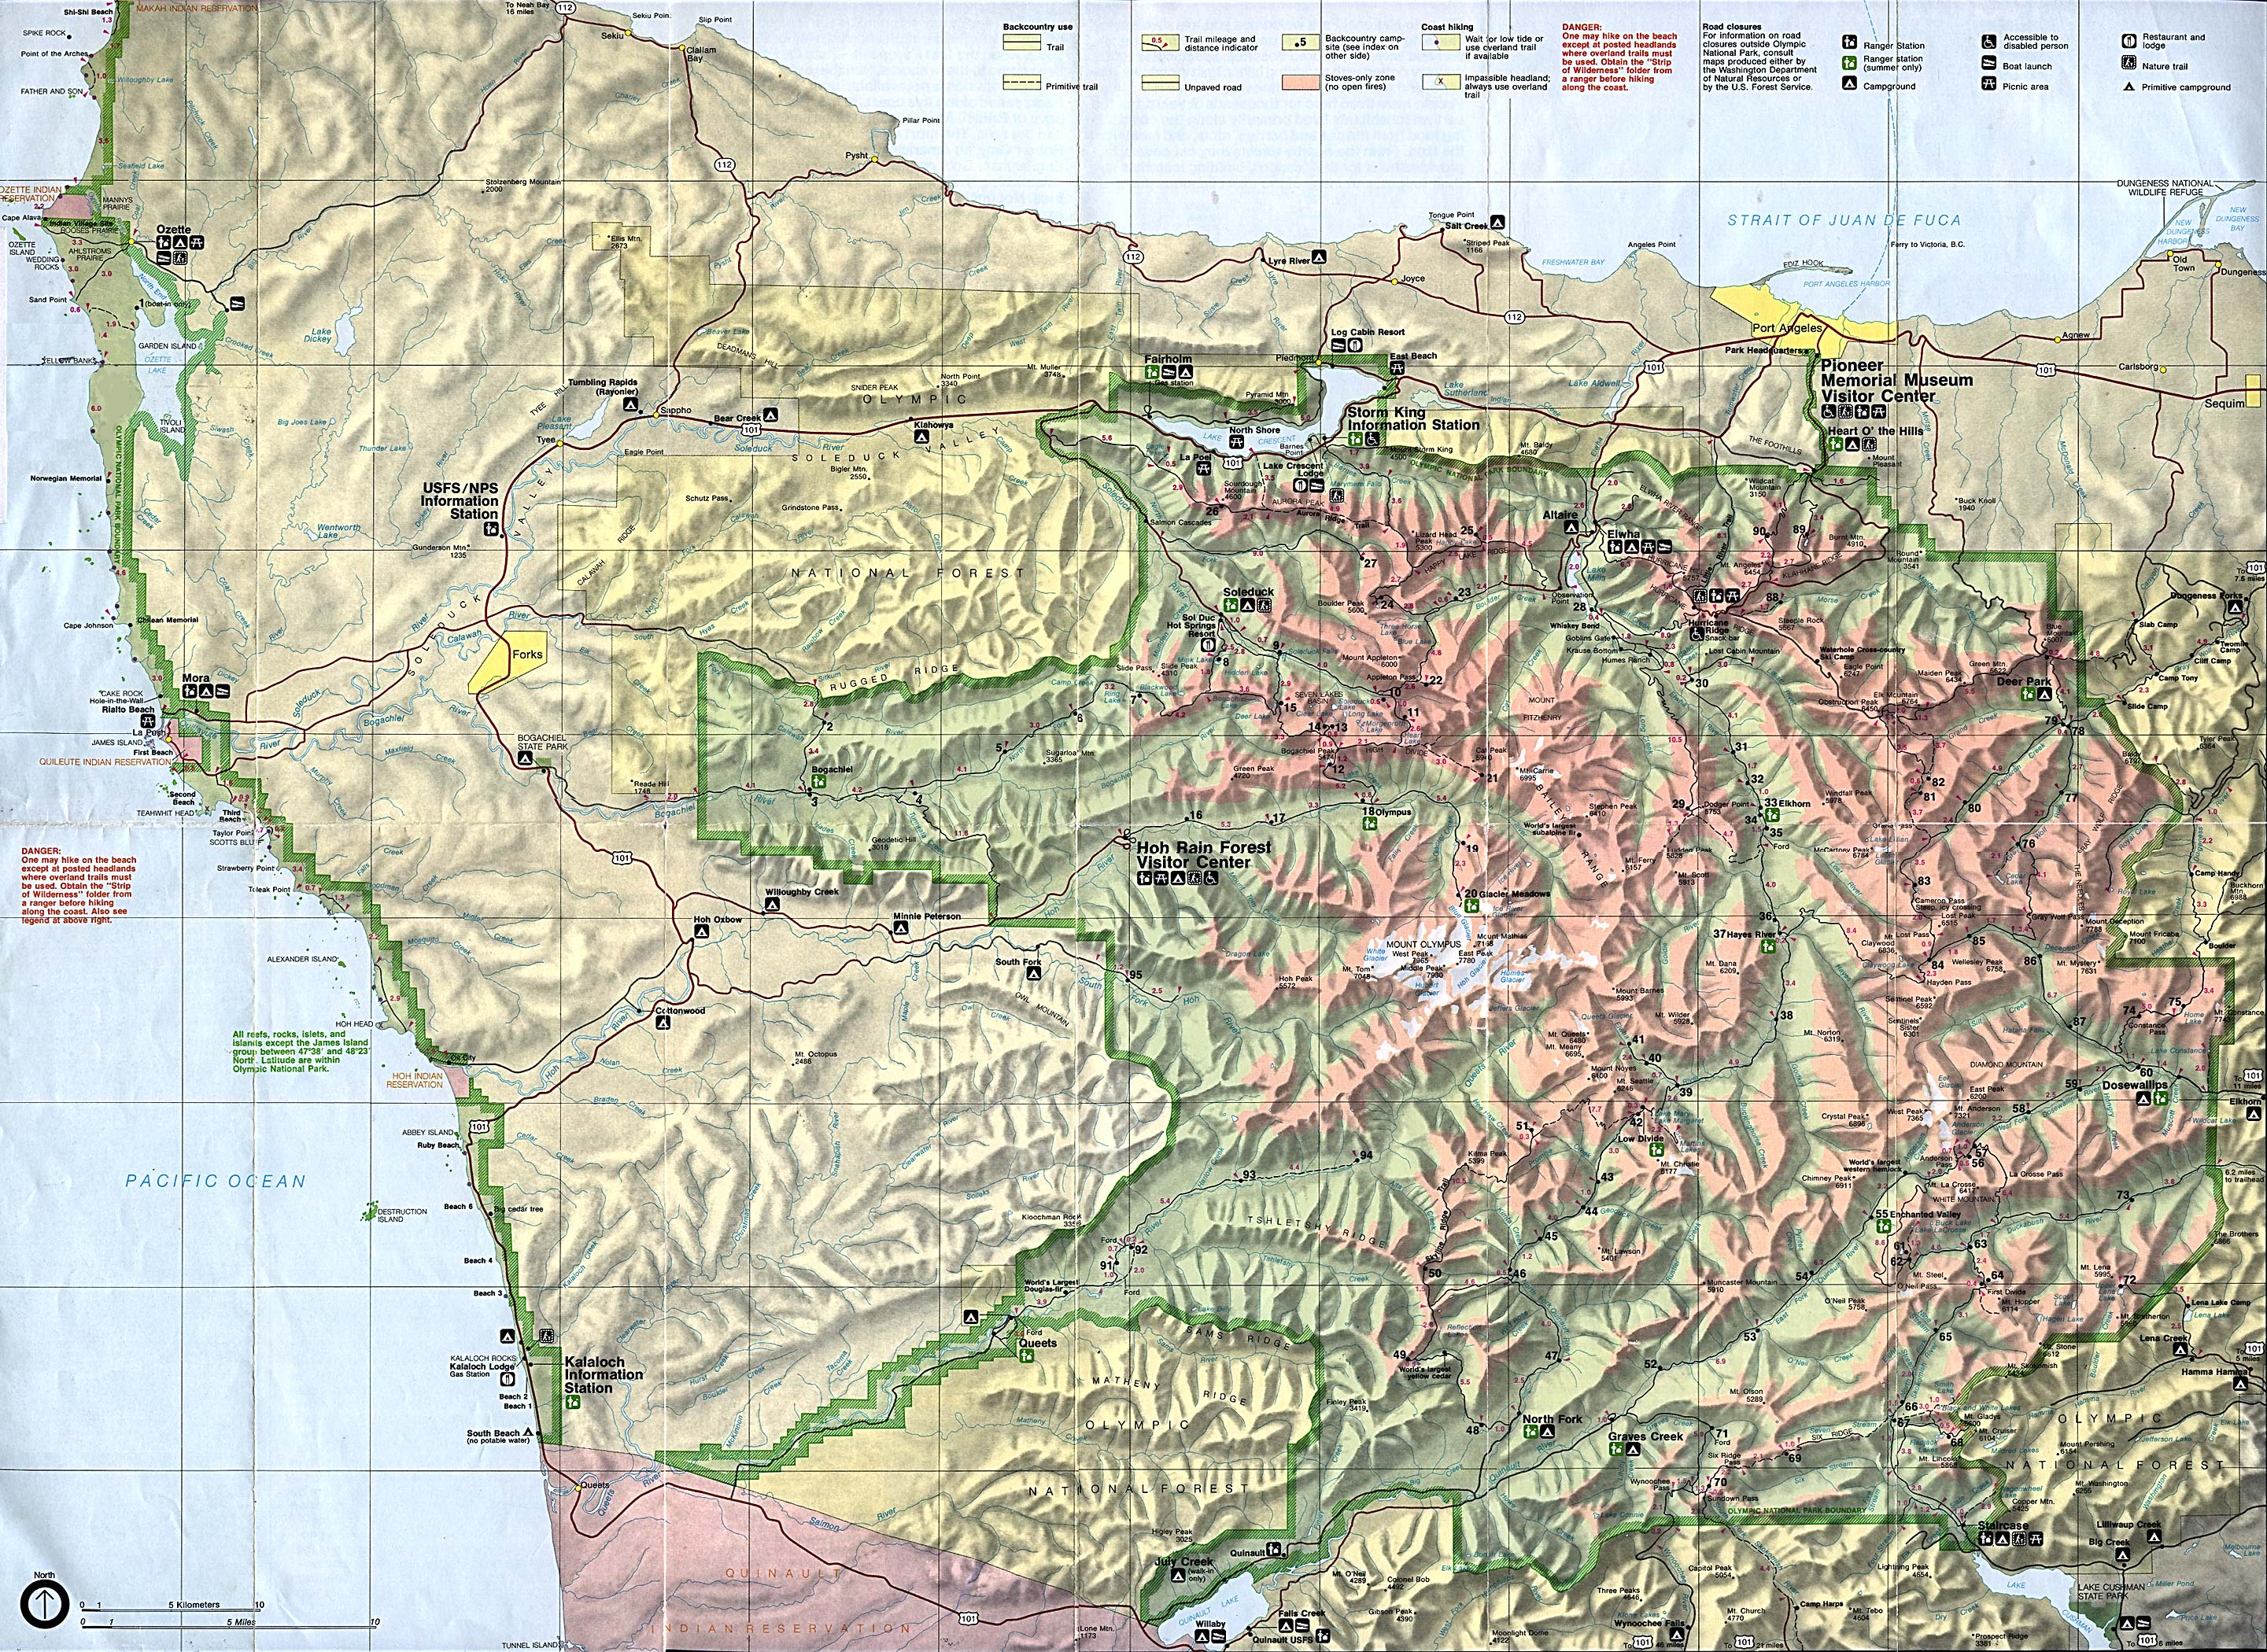 National Parks In Washington State Map.Washington Maps Perry Castaneda Map Collection Ut Library Online